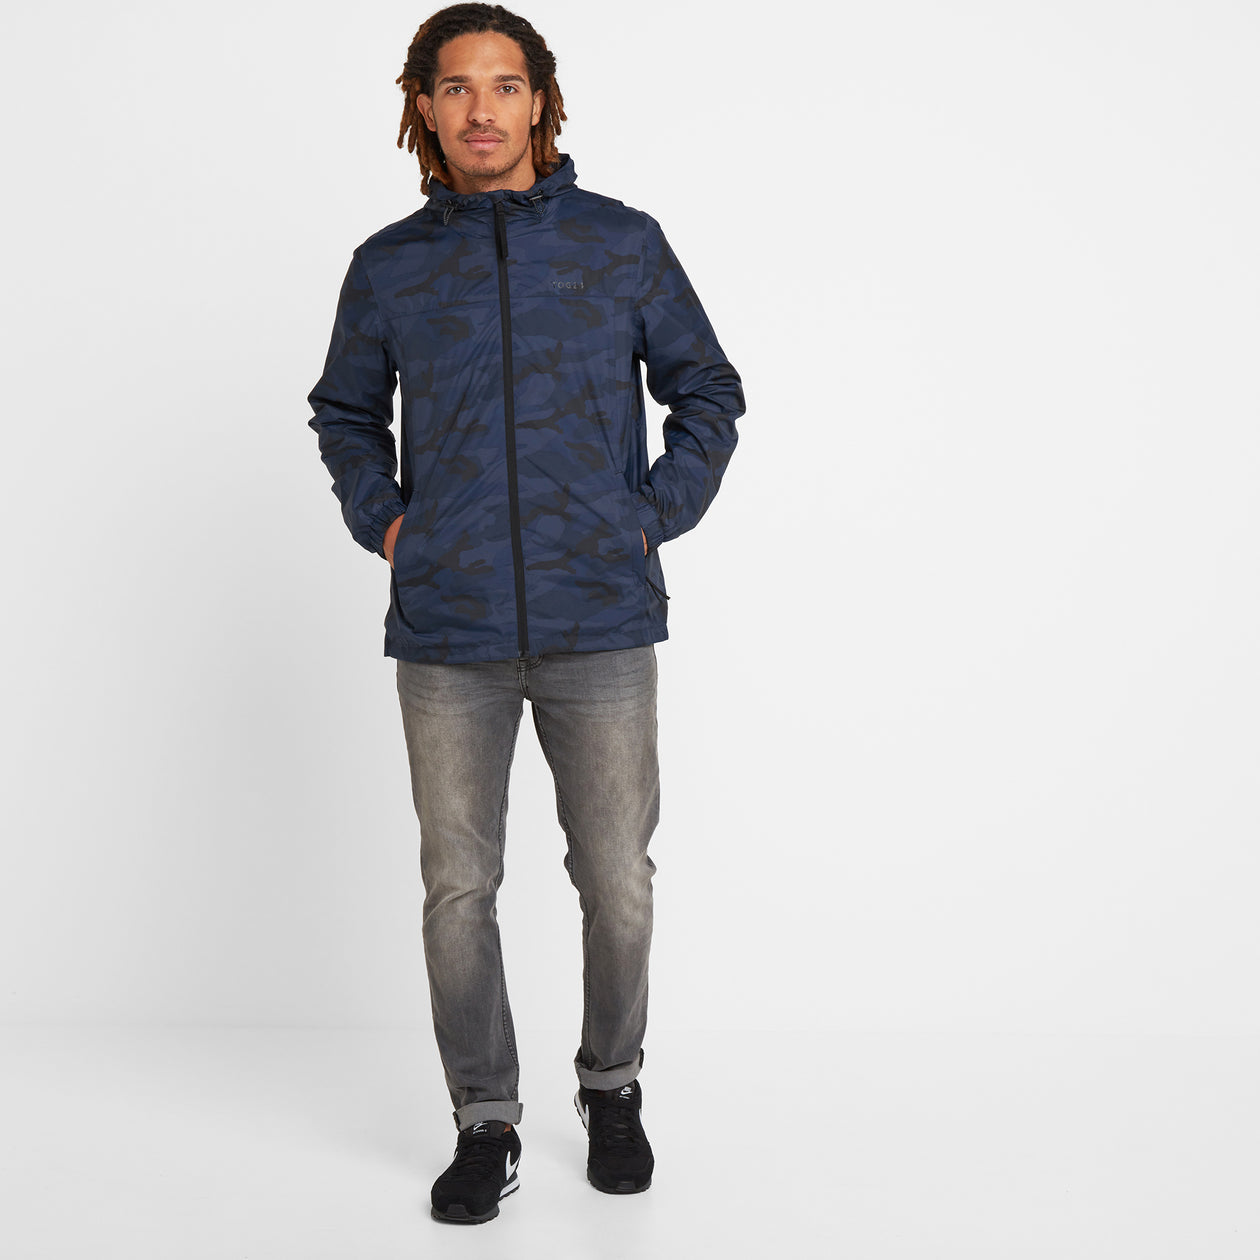 Craven Mens Waterproof Packaway Jacket - Navy/Classic Camo image 4